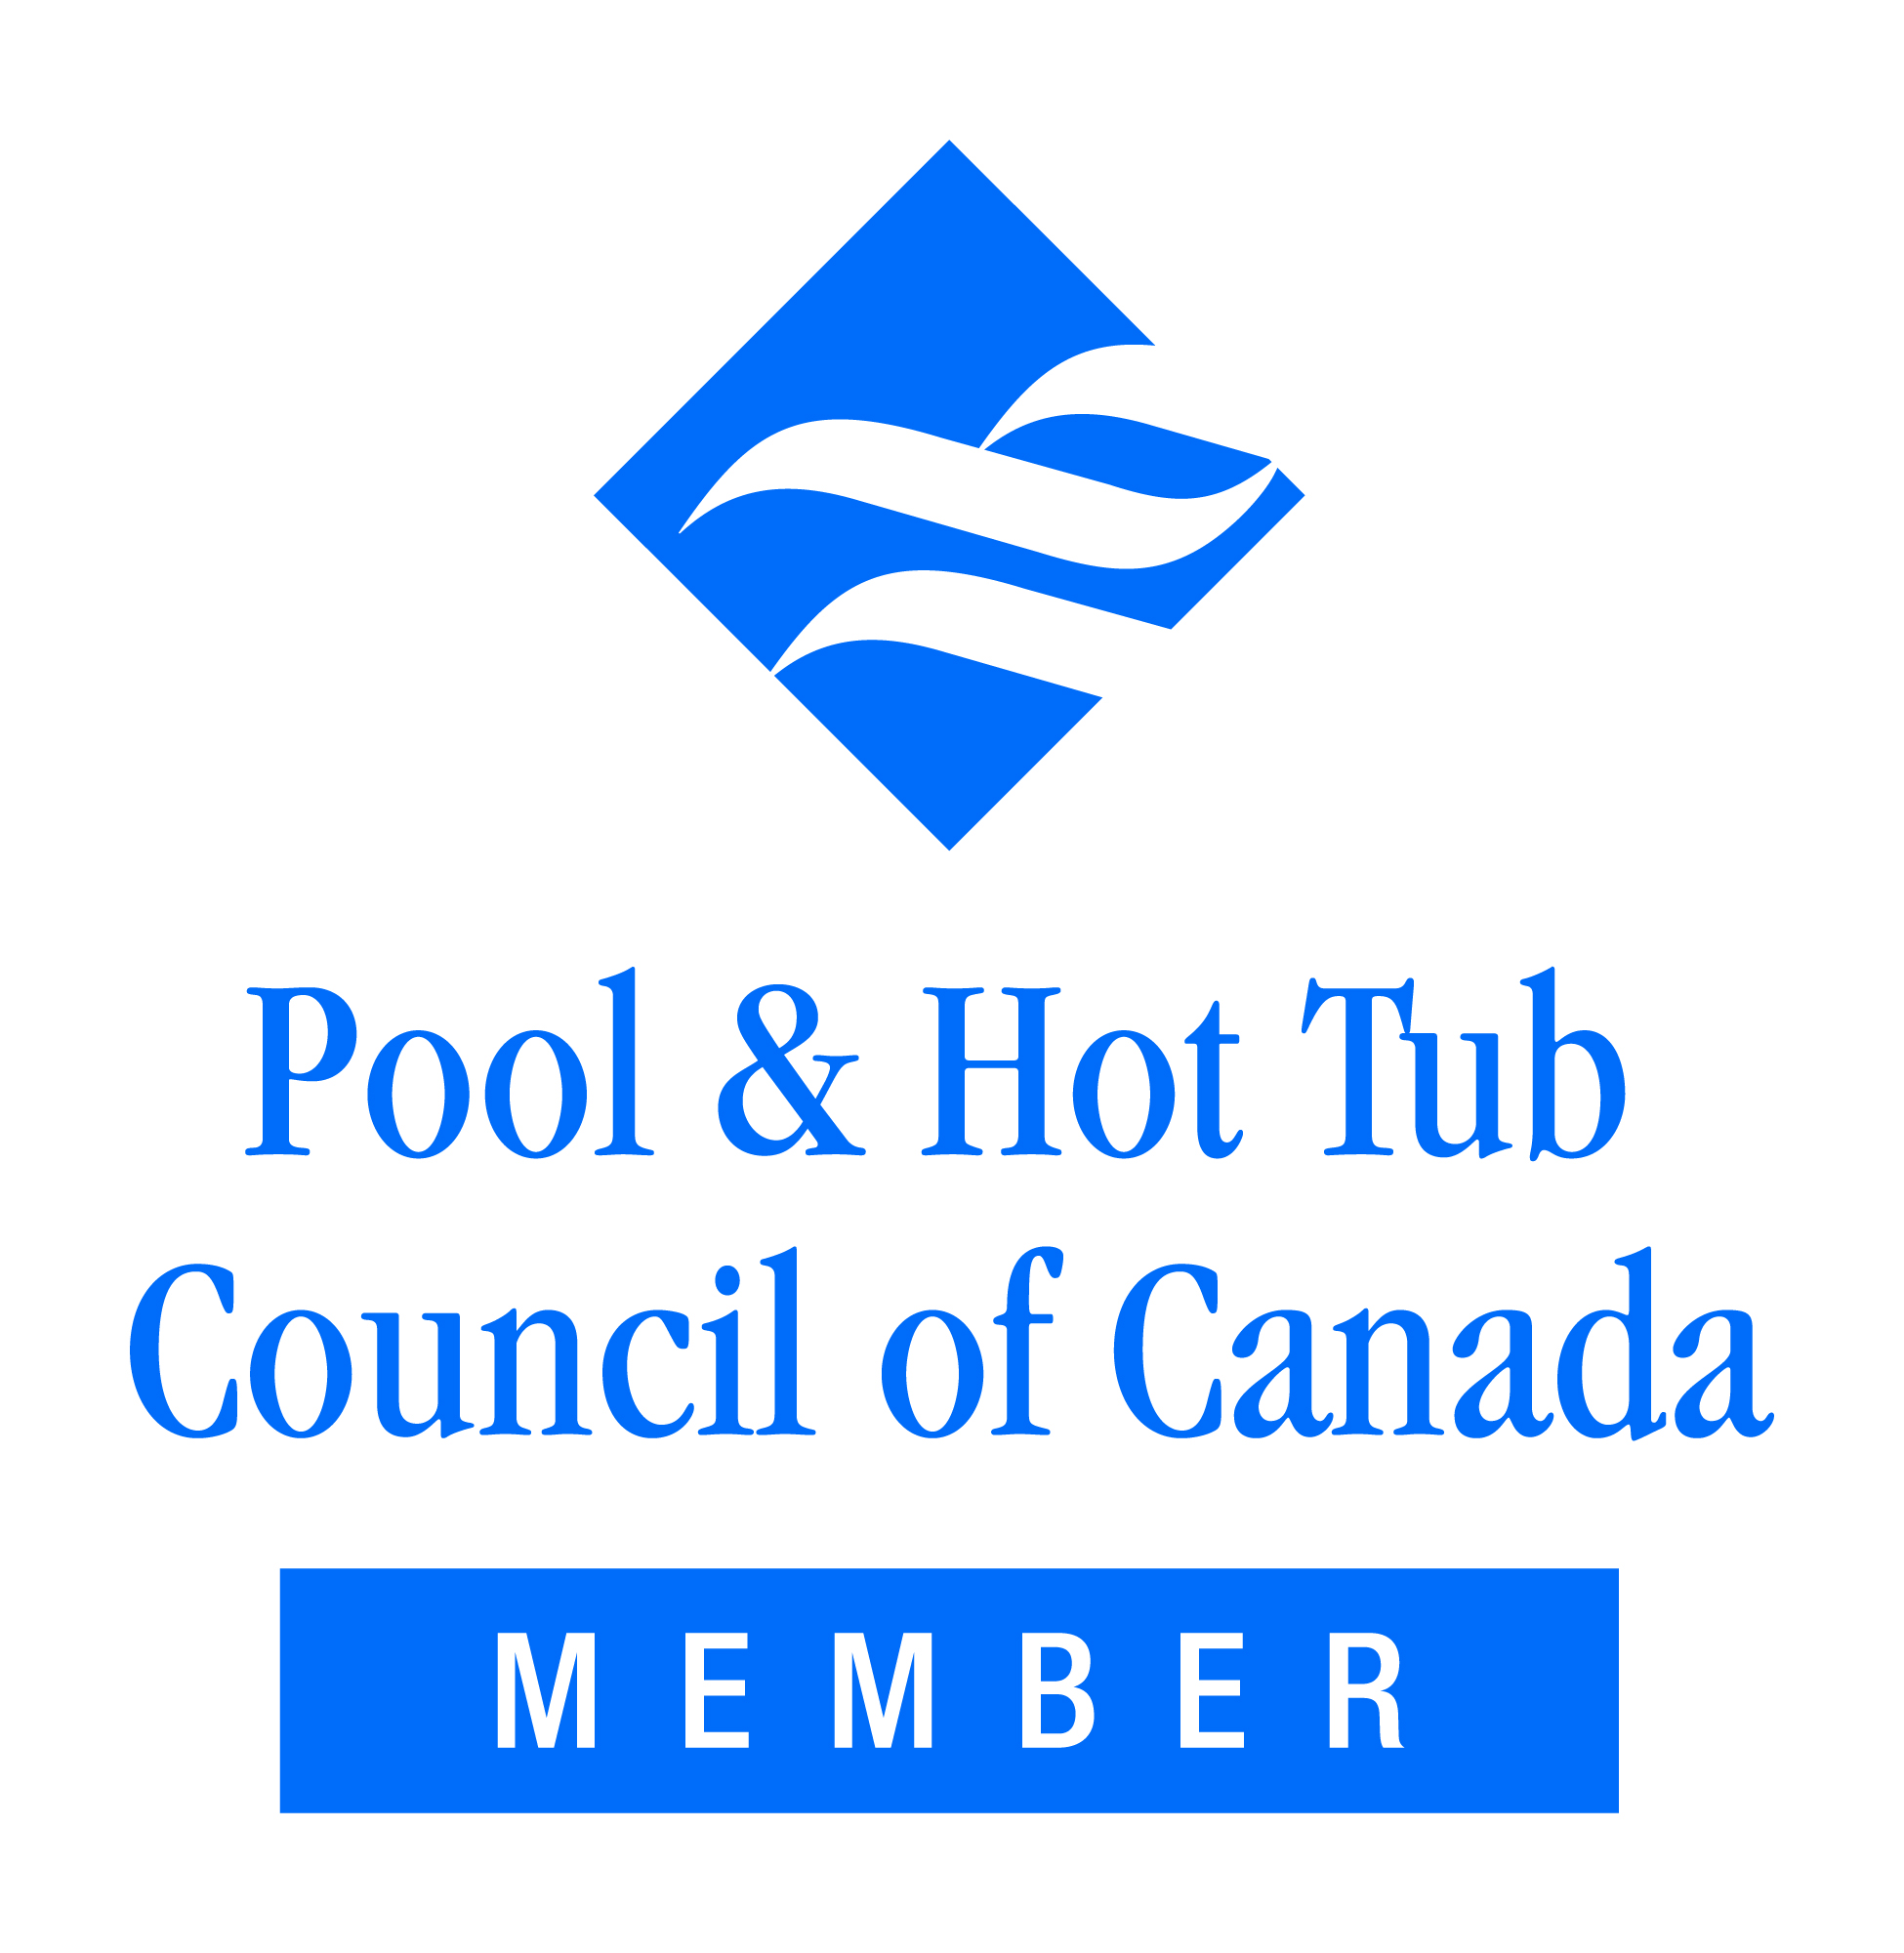 Pool & Hottub Council of Canada member